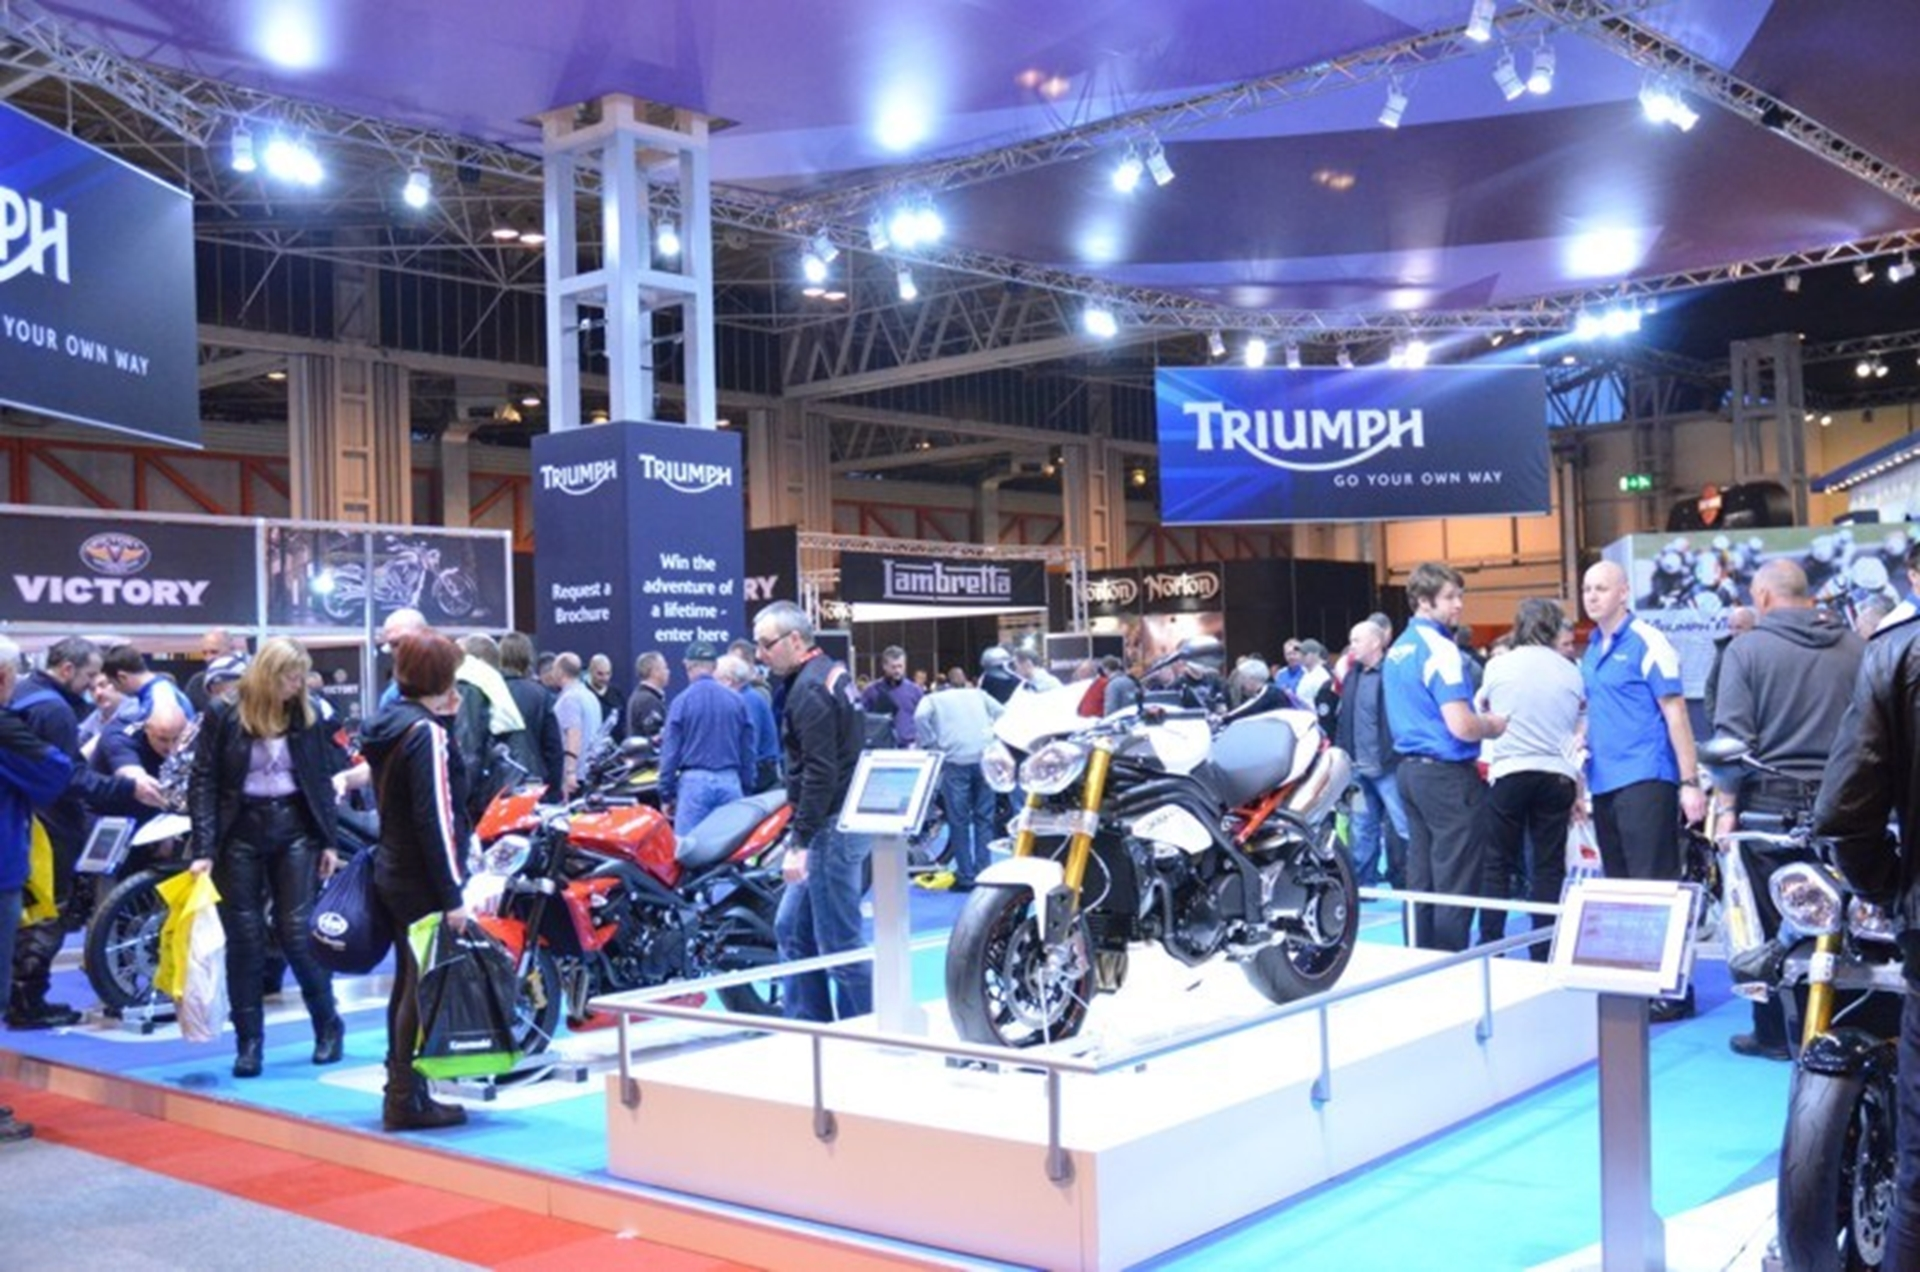 The Triumph stand at Motorcycle Live